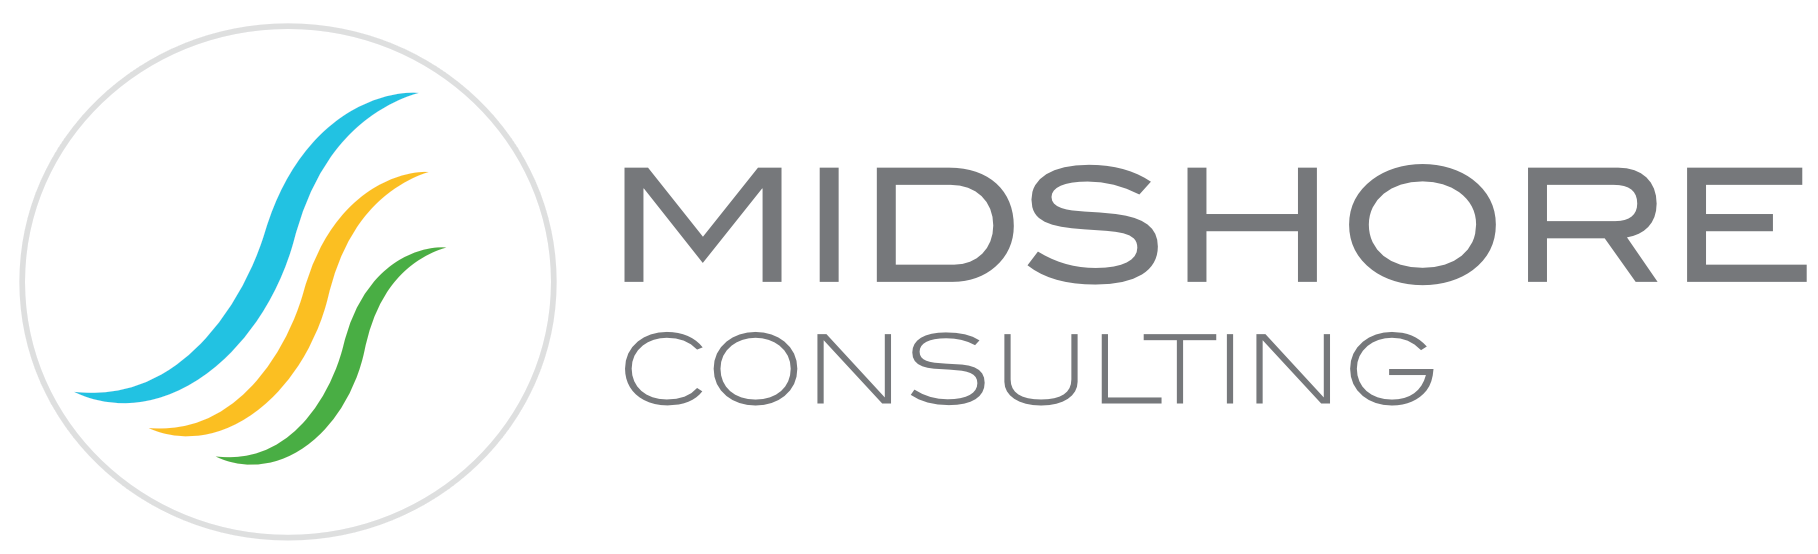 Midshore Consulting Limited